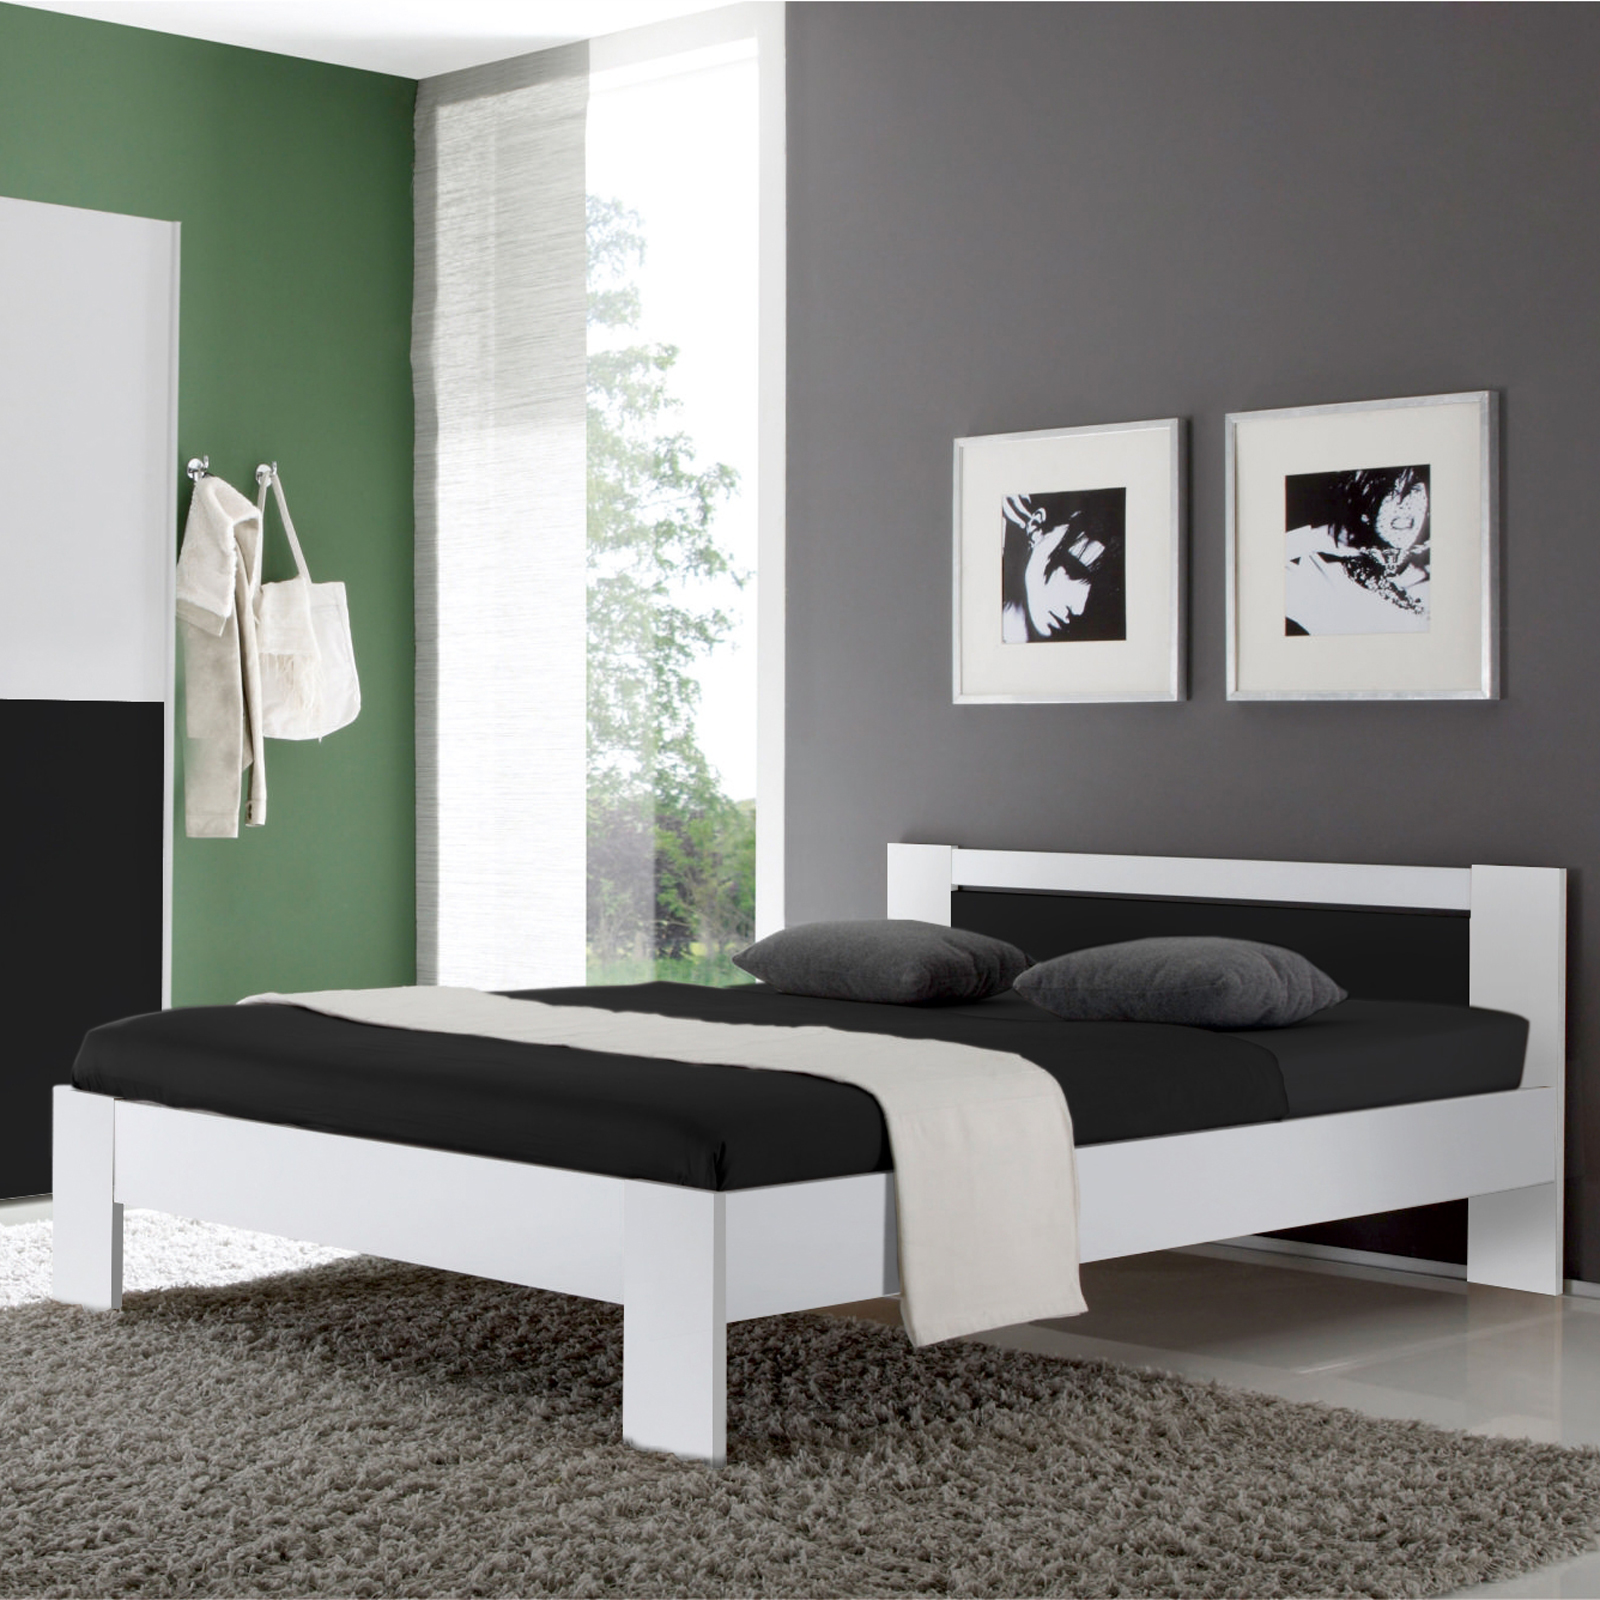 bett vega futonbett wei und schwarz inkl rollrost und. Black Bedroom Furniture Sets. Home Design Ideas